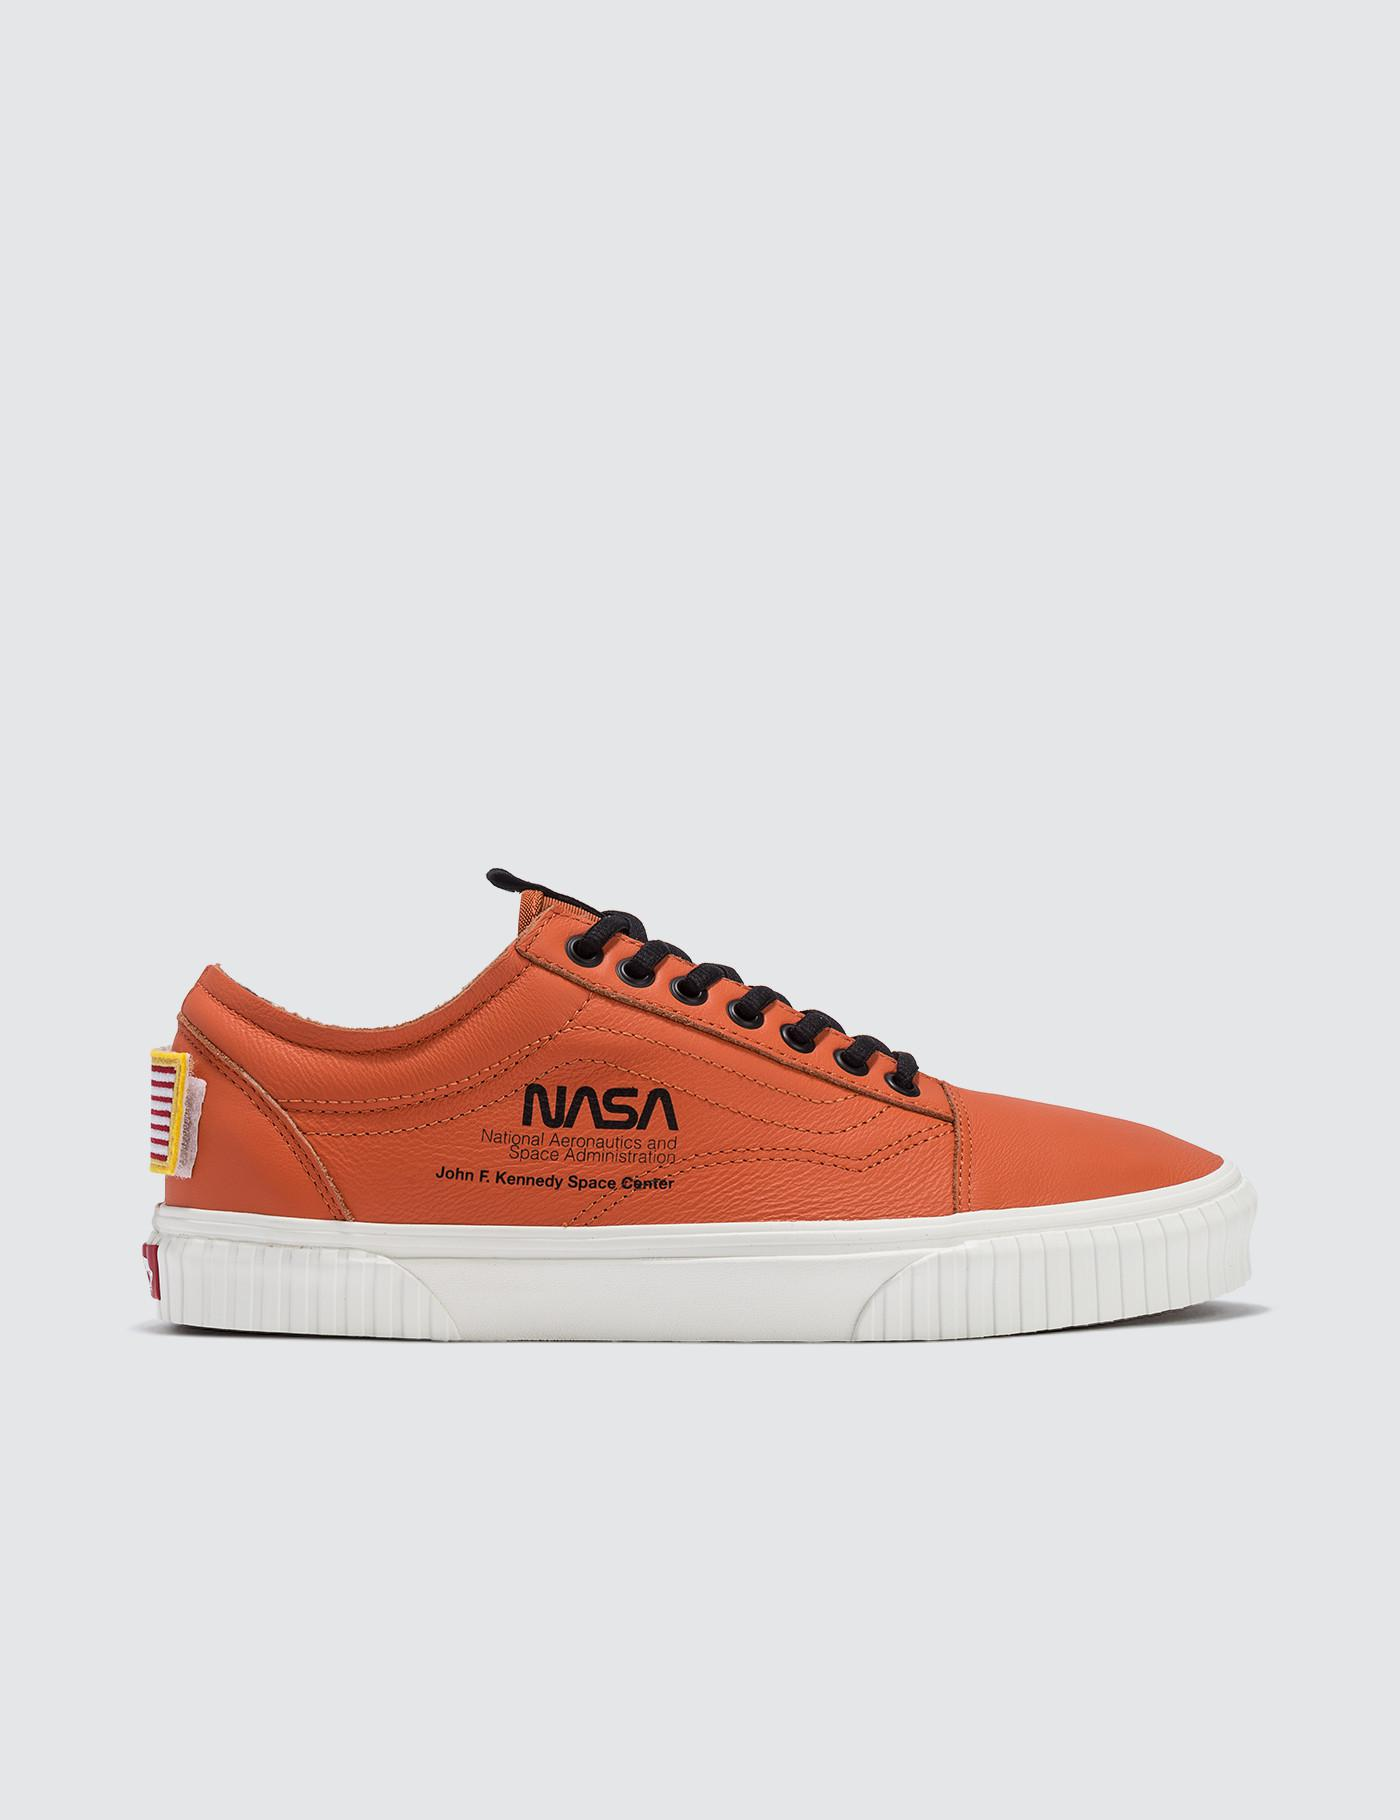 Vans Space Voyager Old Skool in Orange for Men - Lyst d9f02caff